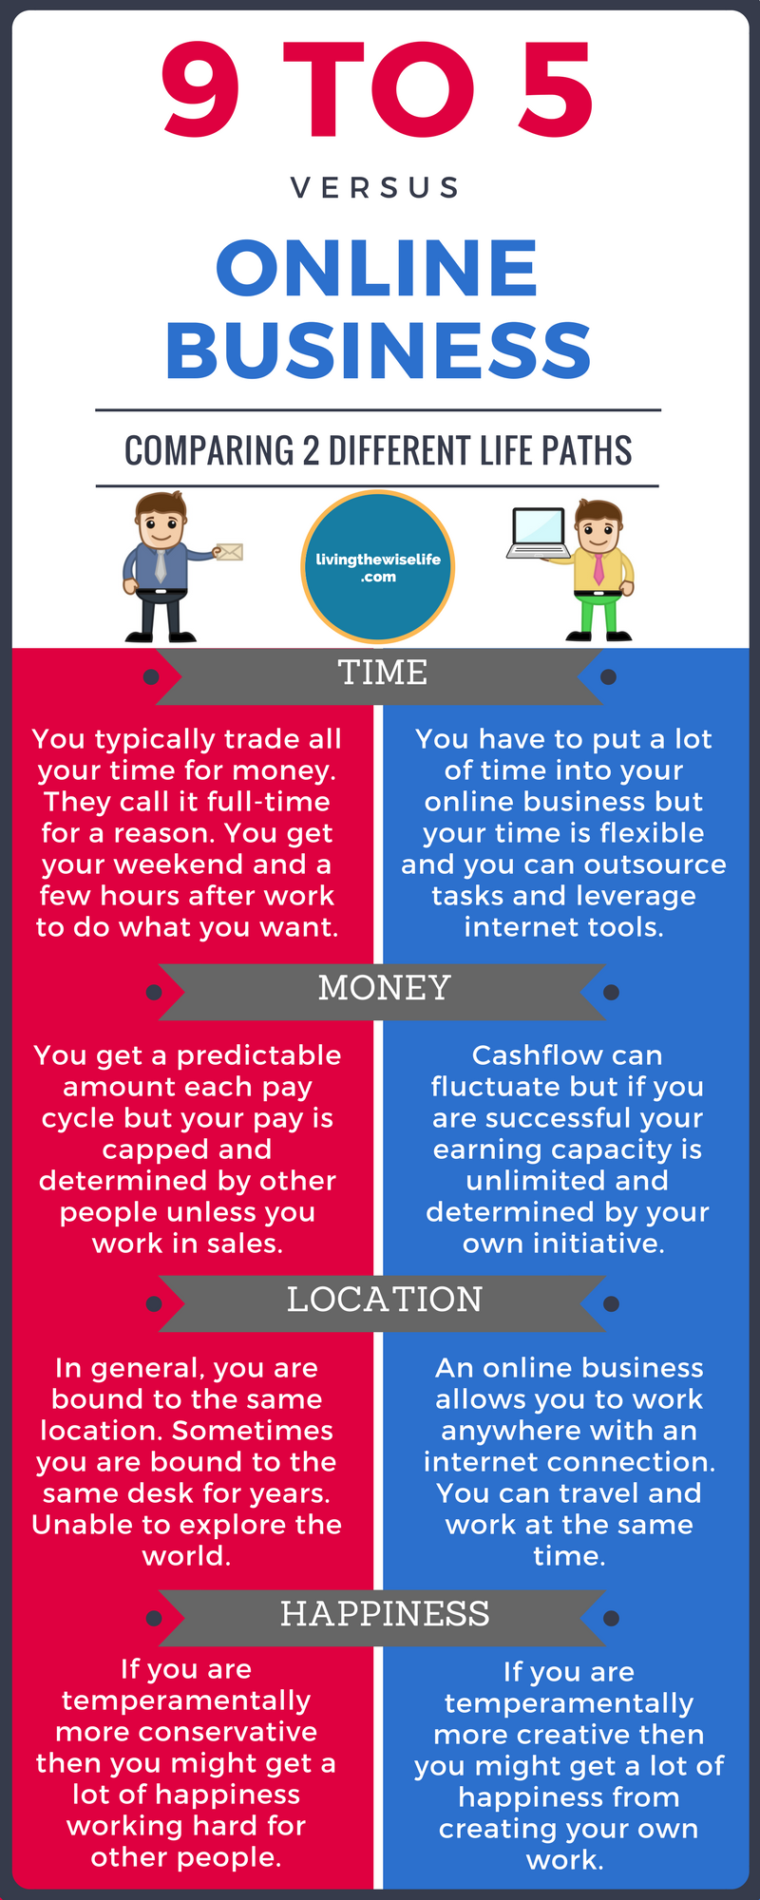 9 to 5 vs Online Business Infographic